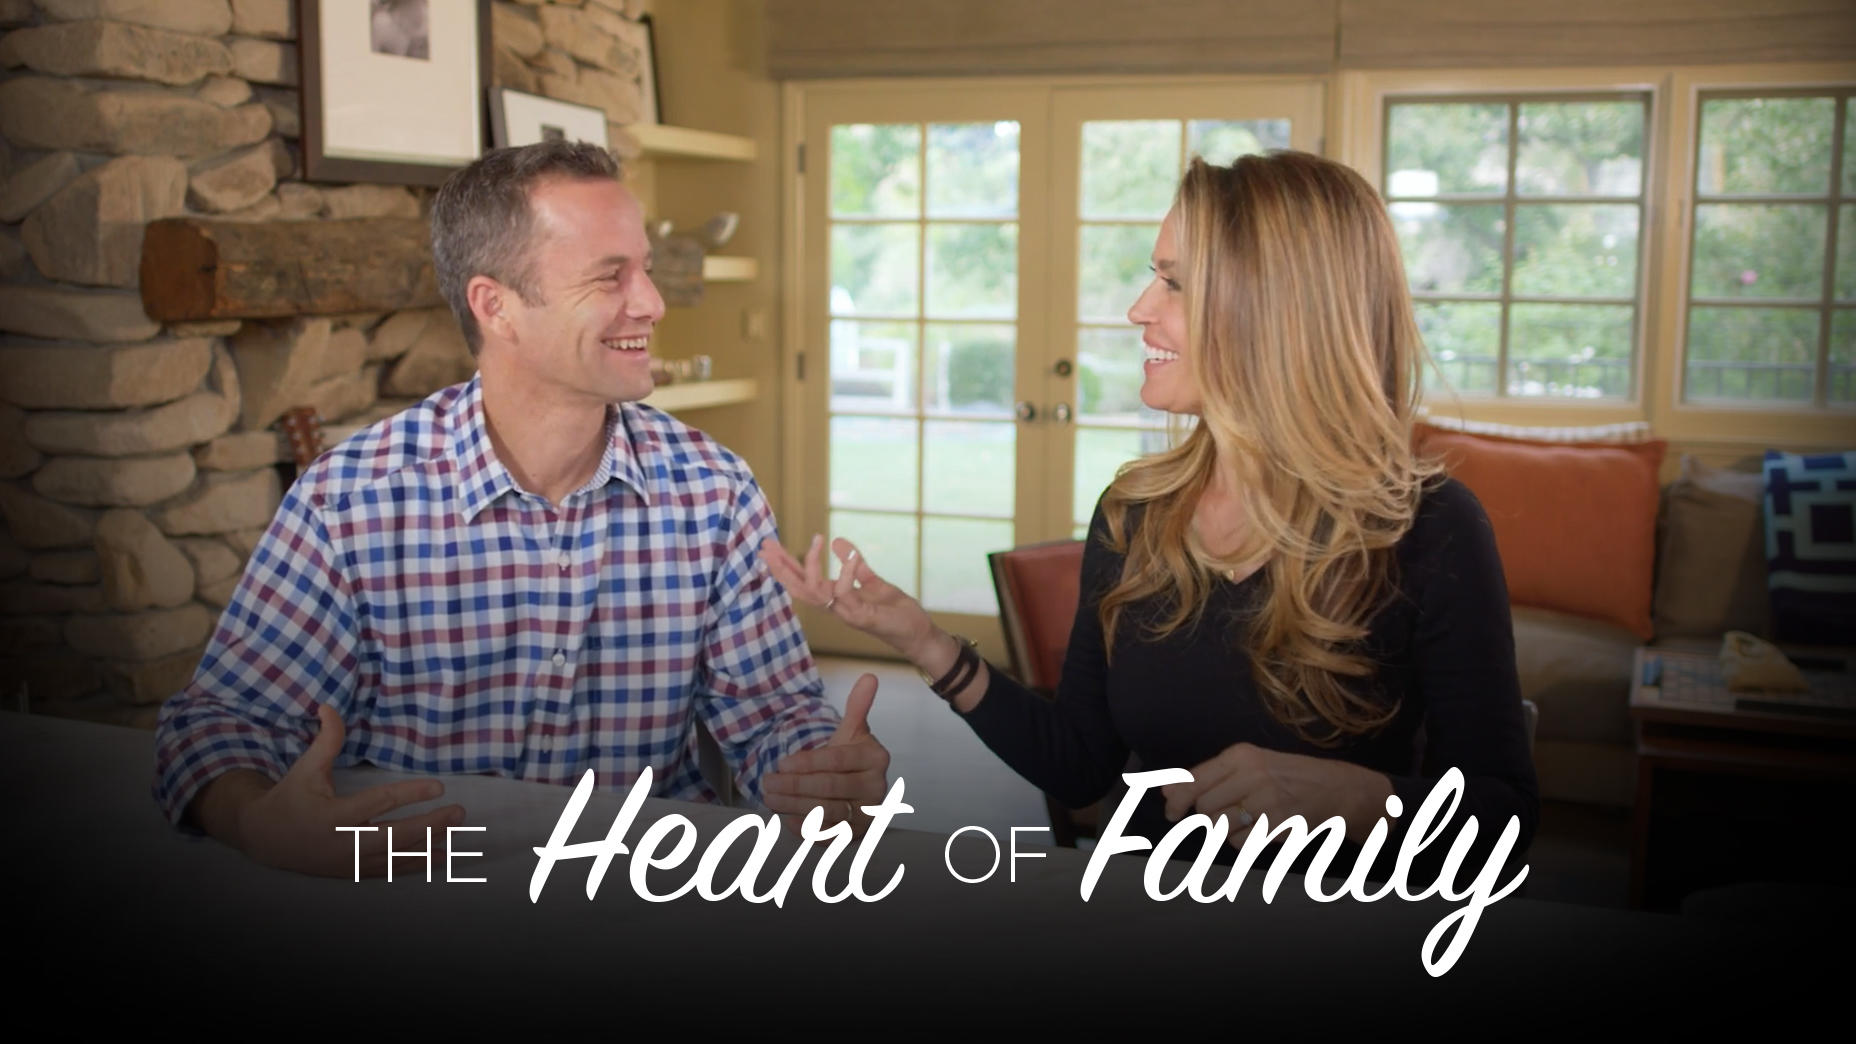 Kirk & Chelsea Cameron online course on marriage and family